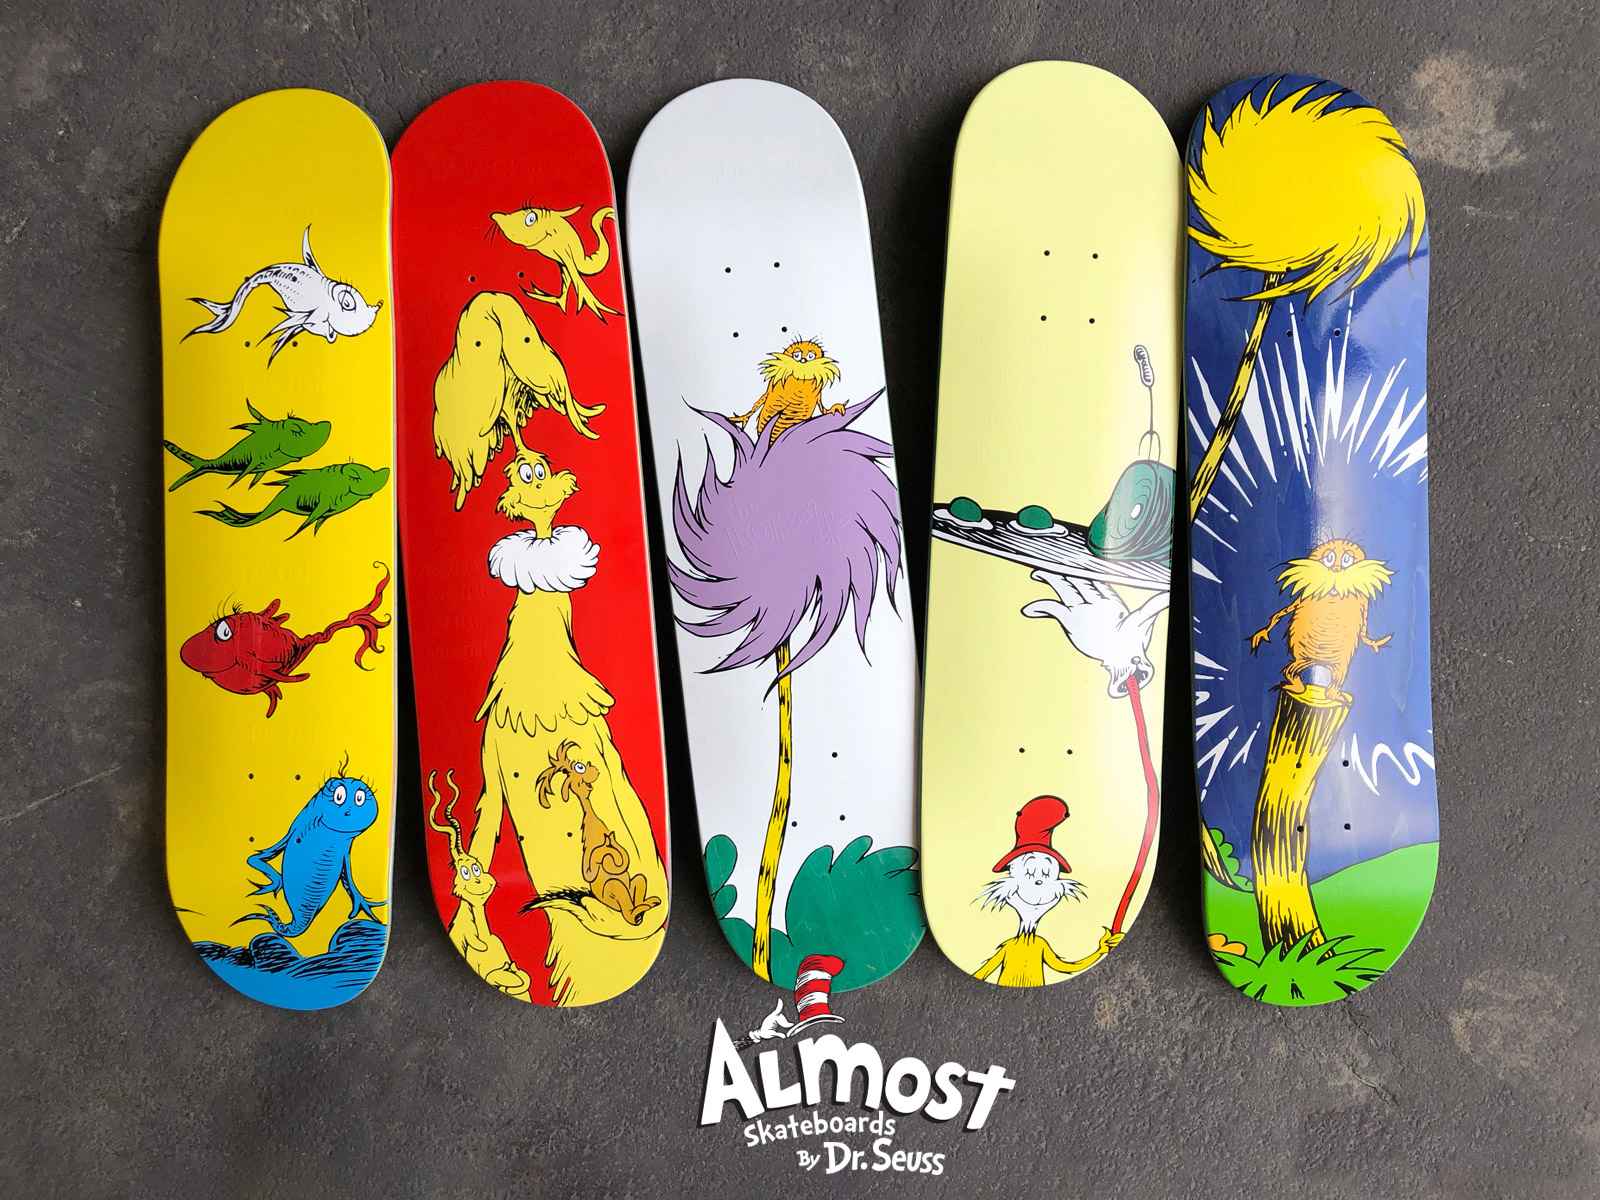 Almost_Skateboards_by_Dr_Seuss.jpg